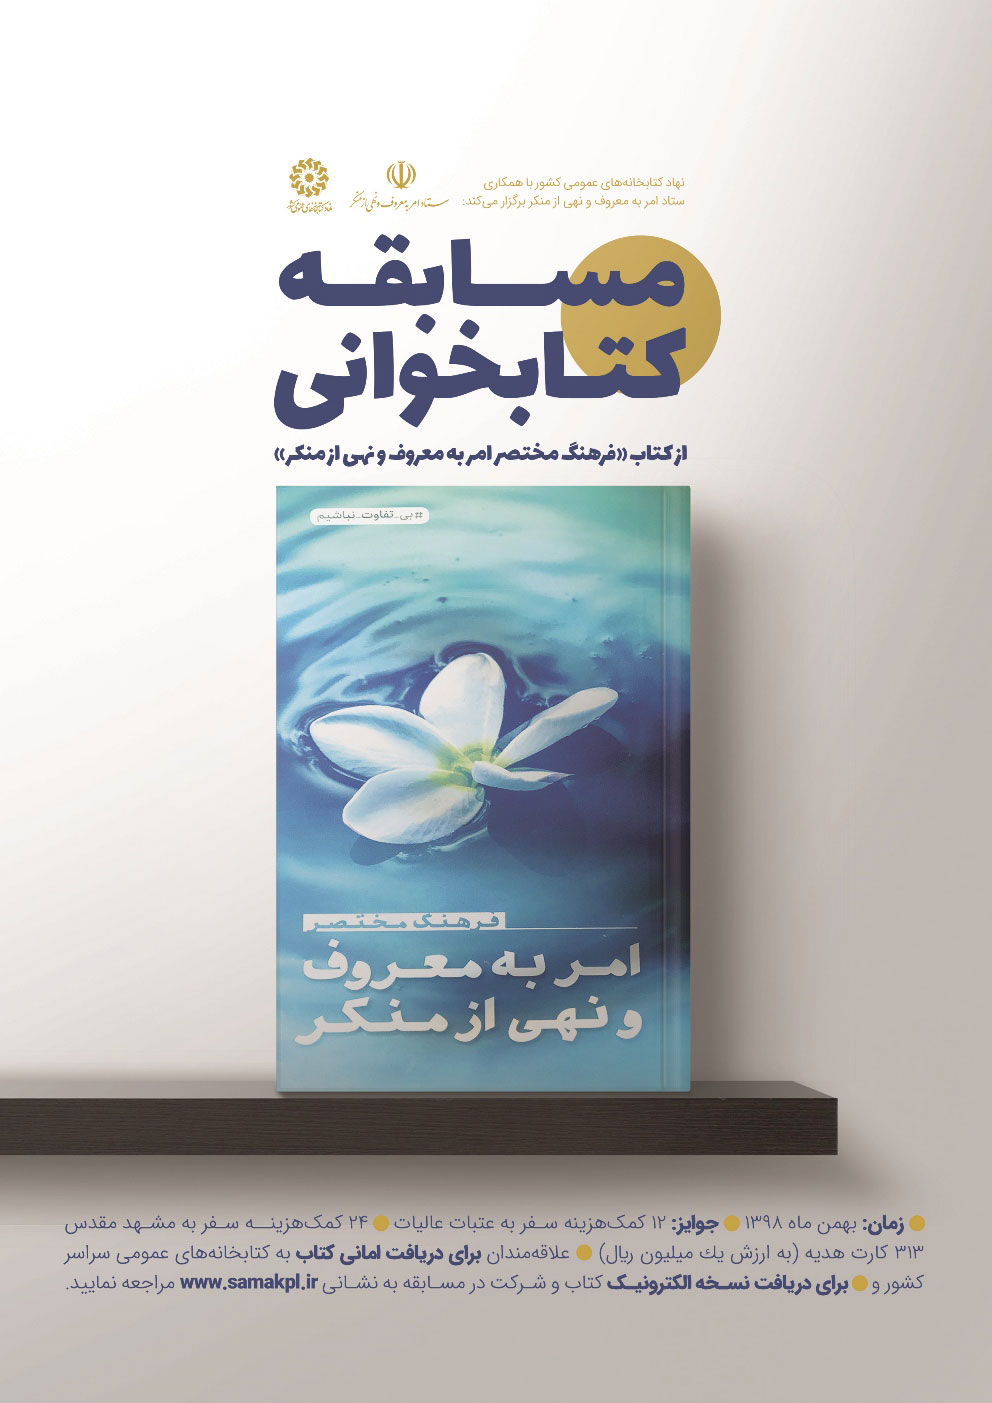 <strong>مسابقه</strong> <strong>کتابخوانی</strong> امر به <strong>معروف</strong>